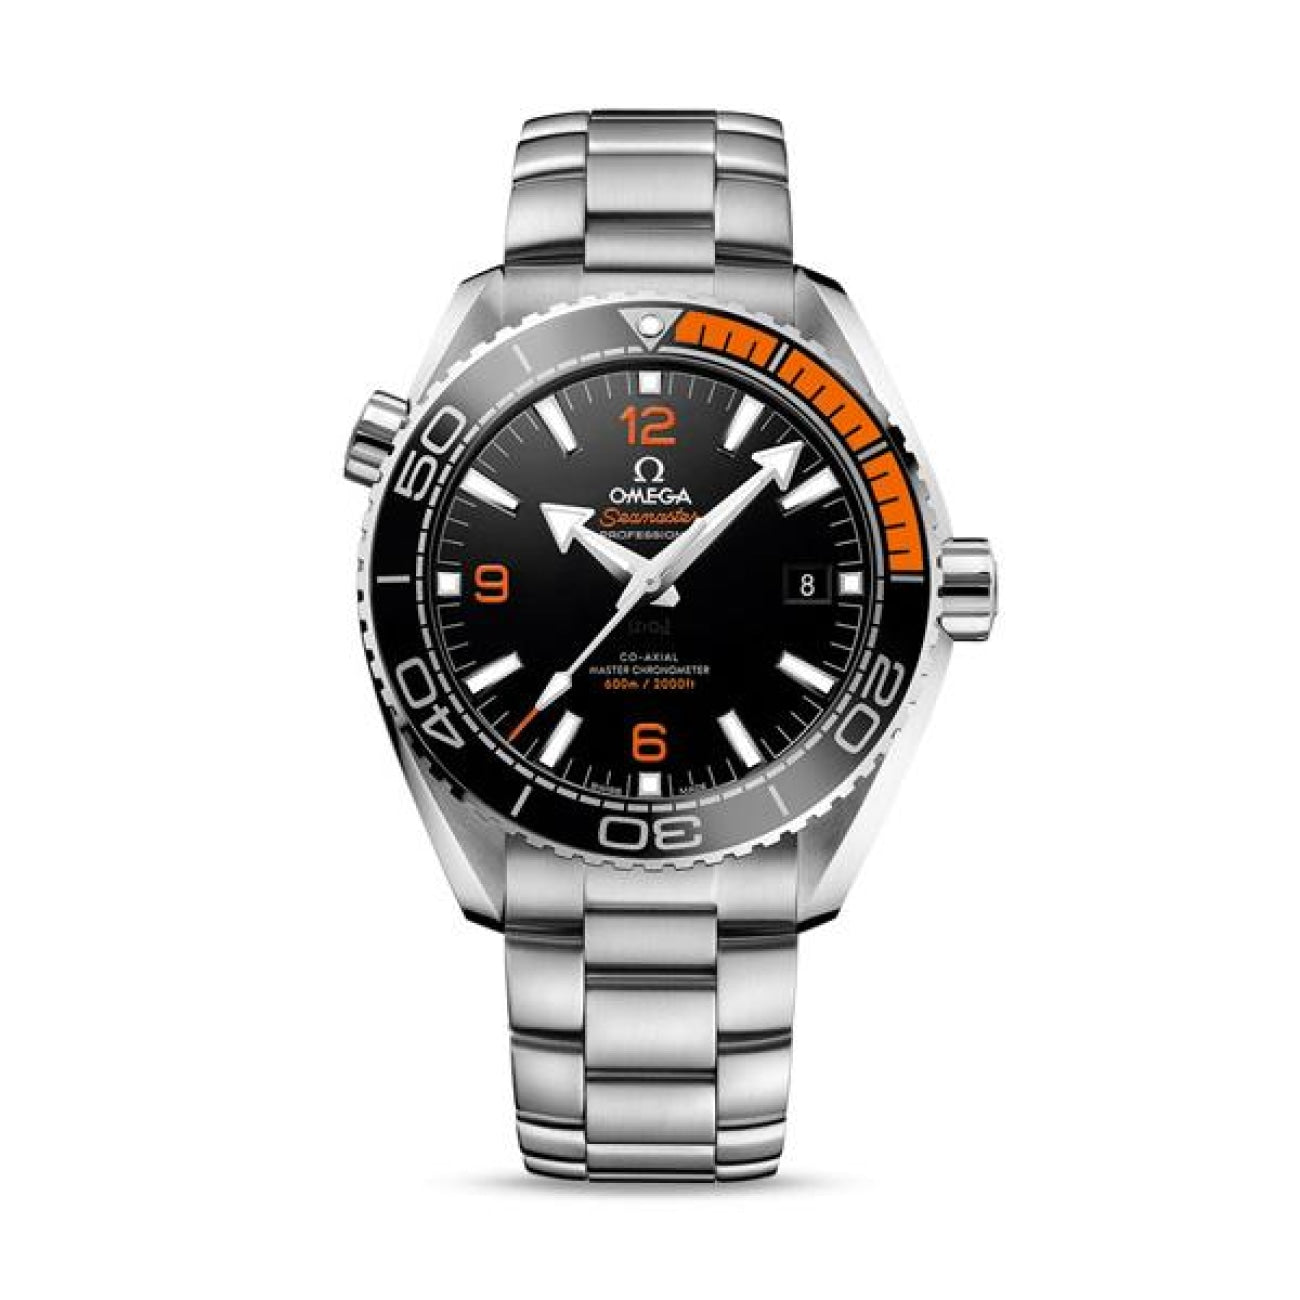 Omega Watches - Seamaster Planet Ocean 600 M Omega Co-Axial Master Chronometer | Manfredi Jewels